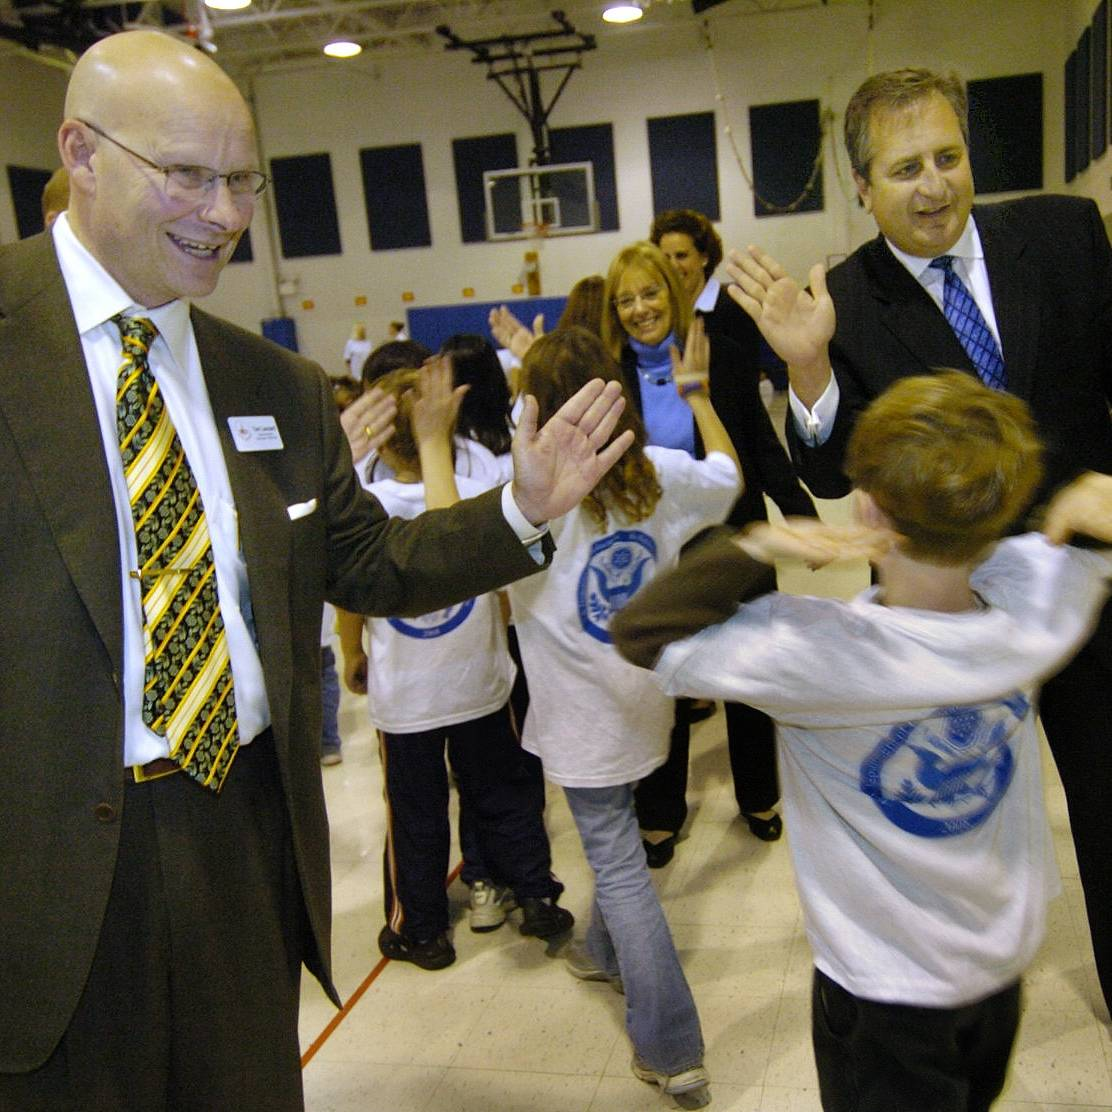 District 220 Superintendent Tom Leonard, left, attended his final school board meeting in Barrington Tuesday night. Amid the tributes, district spokesman Jeff Arnett praised Leonard's engaging personality. Here, Leonard and board President Brian Battle greet students from Lines School in 2008.